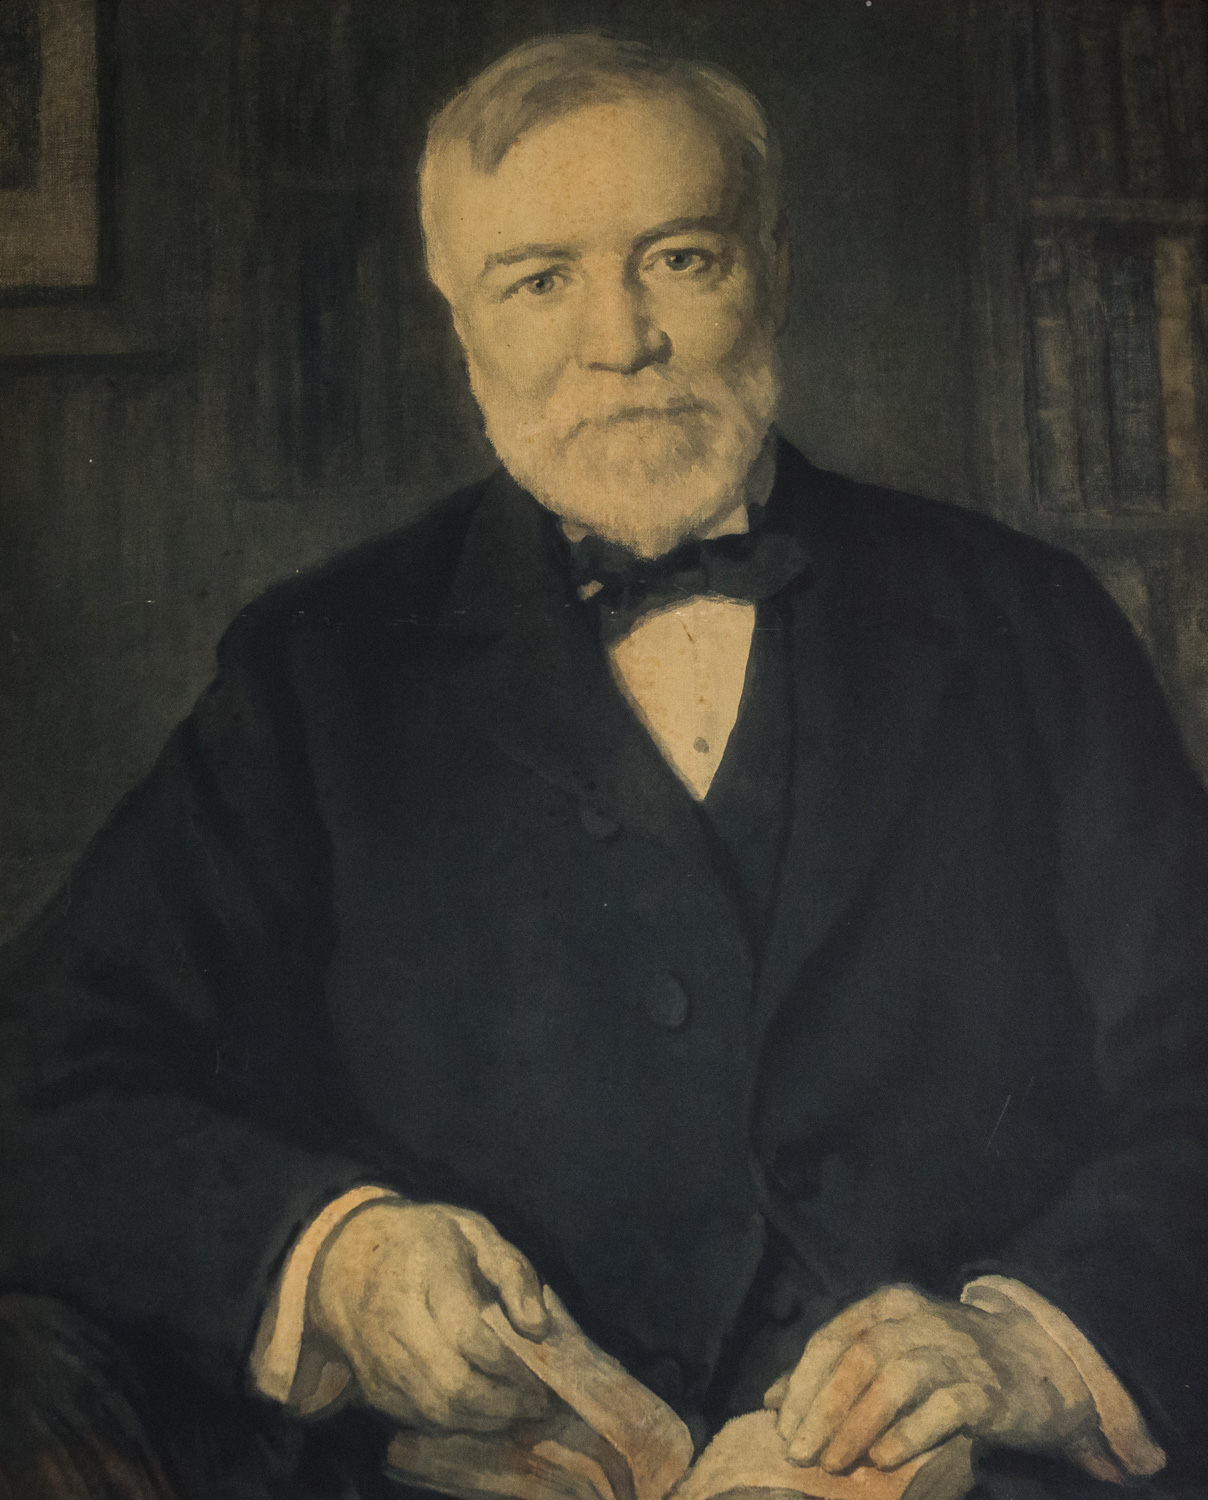 Portrait of Andrew Carnegie by Luis Mora, 1873-1940, Print, Gift